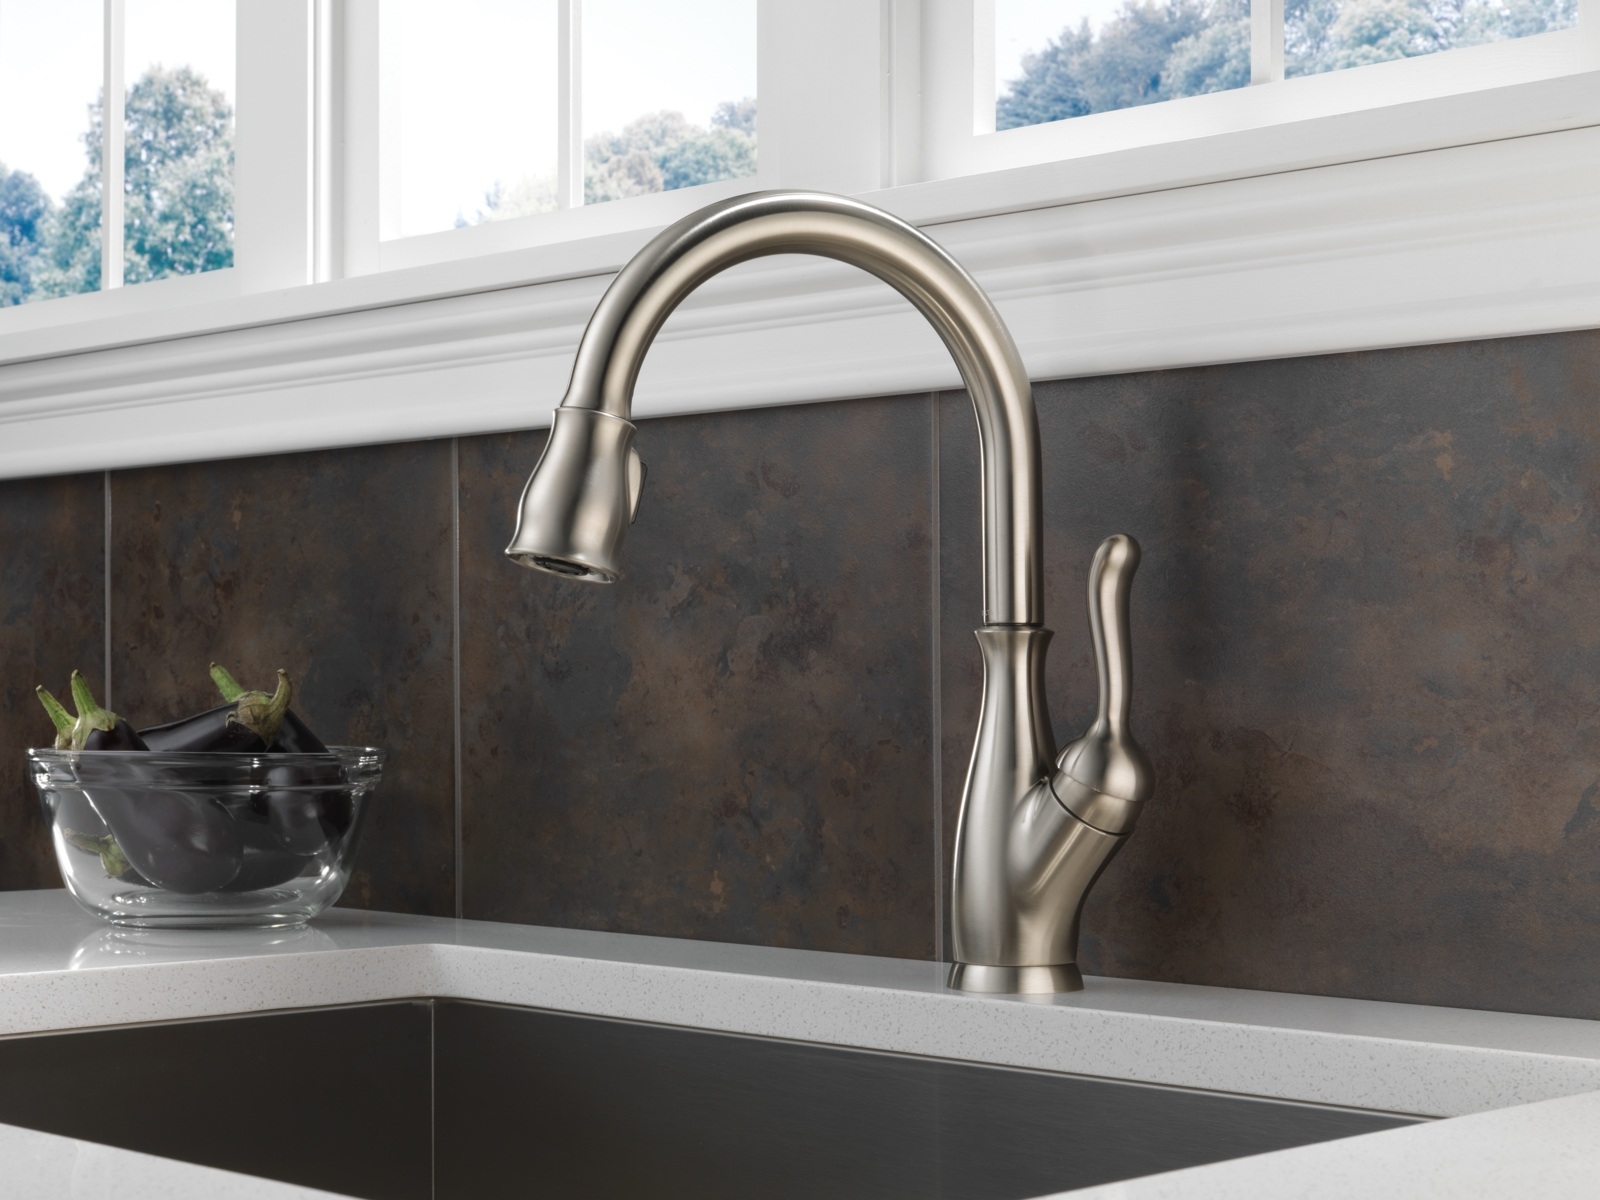 delta leland kitchen faucet brushed nickel delta leland kitchen faucet brushed nickel leland kitchen collection 1600 x 1200